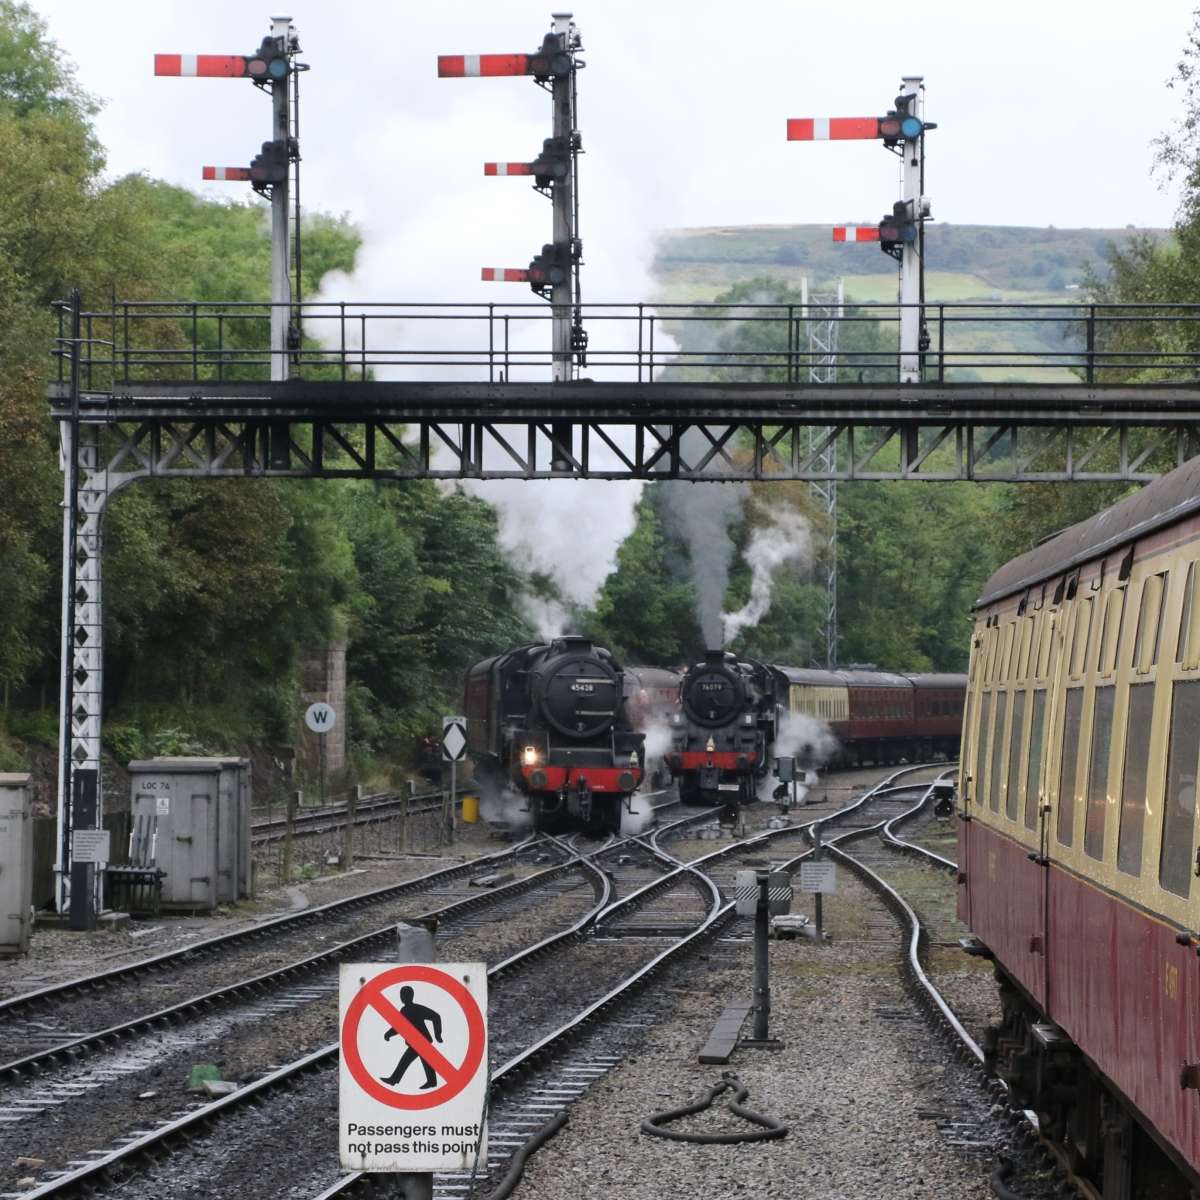 Activity at Grosmont with LMS 4-6-0 Class 5MT 45428 and BR 2-6-0 Class 4MT 76079